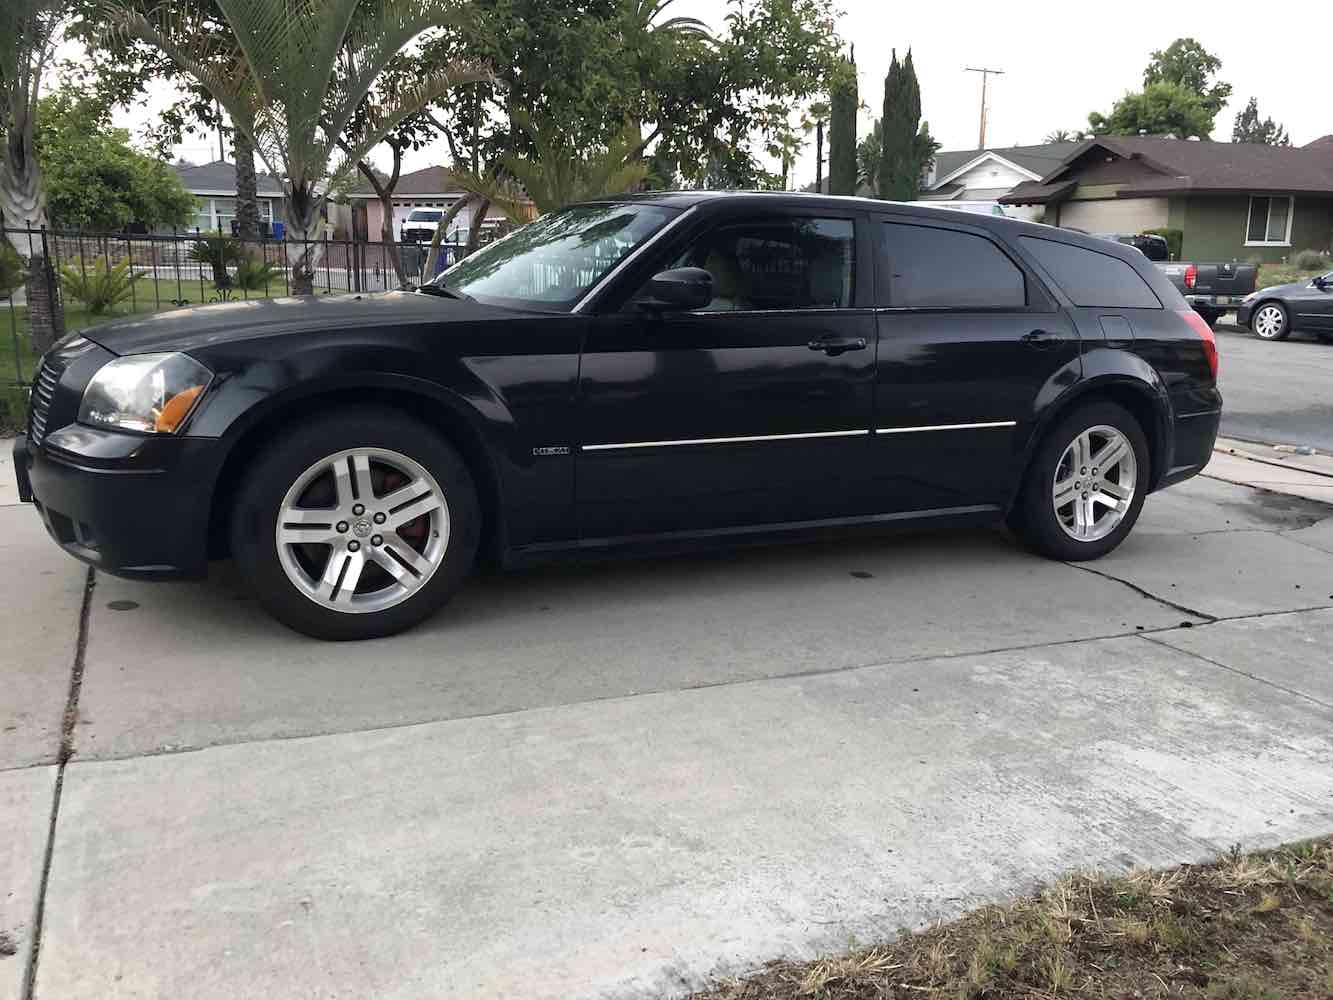 2007 Magnum R/T For Sale in SoCal-img_01_4454.jpeg